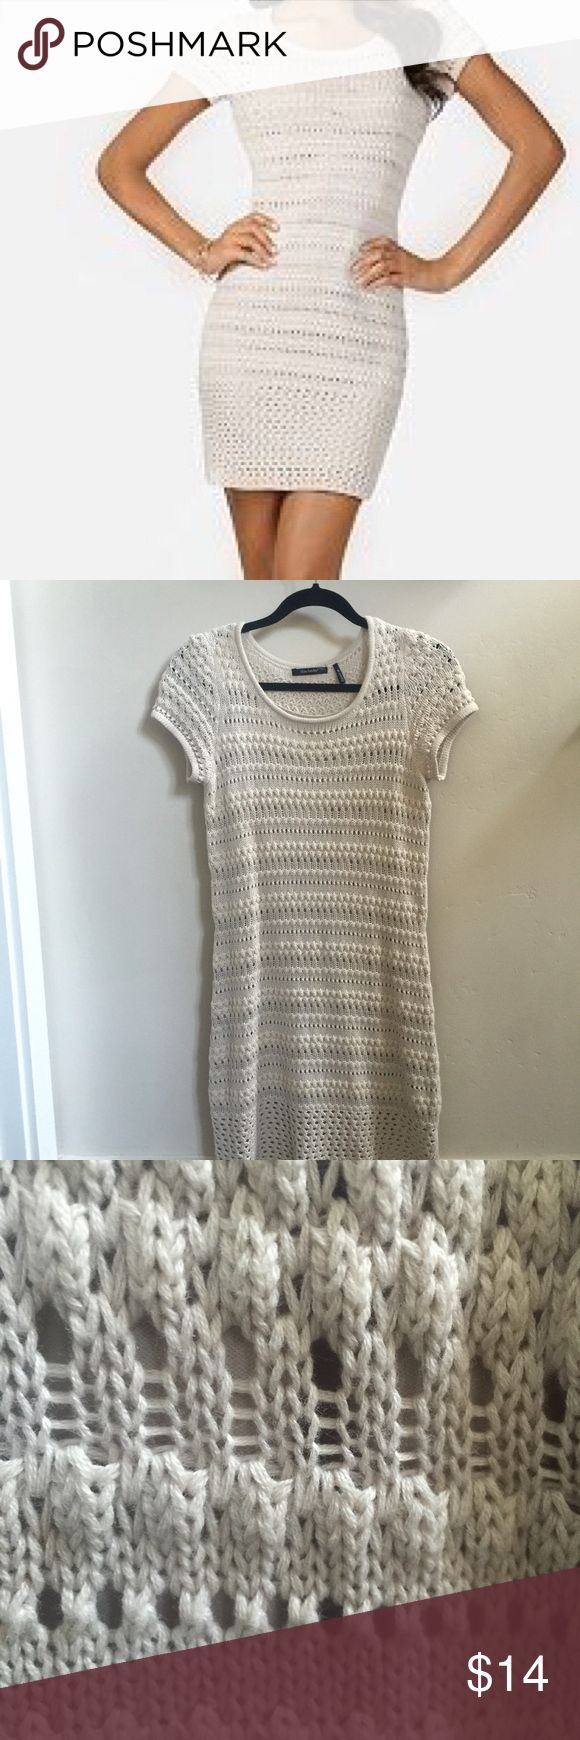 "Crochet Sweaterdress Cute, contemporary  crochet sweater dress in cream. Comfortable cotton blend. Fully lined with cream slip. Measures approximately 37"" from top of shoulder to bottom hem. Previously worn once to an event. Close to the body fit w some comfortable stretch. Daisy Fuentes Dresses"